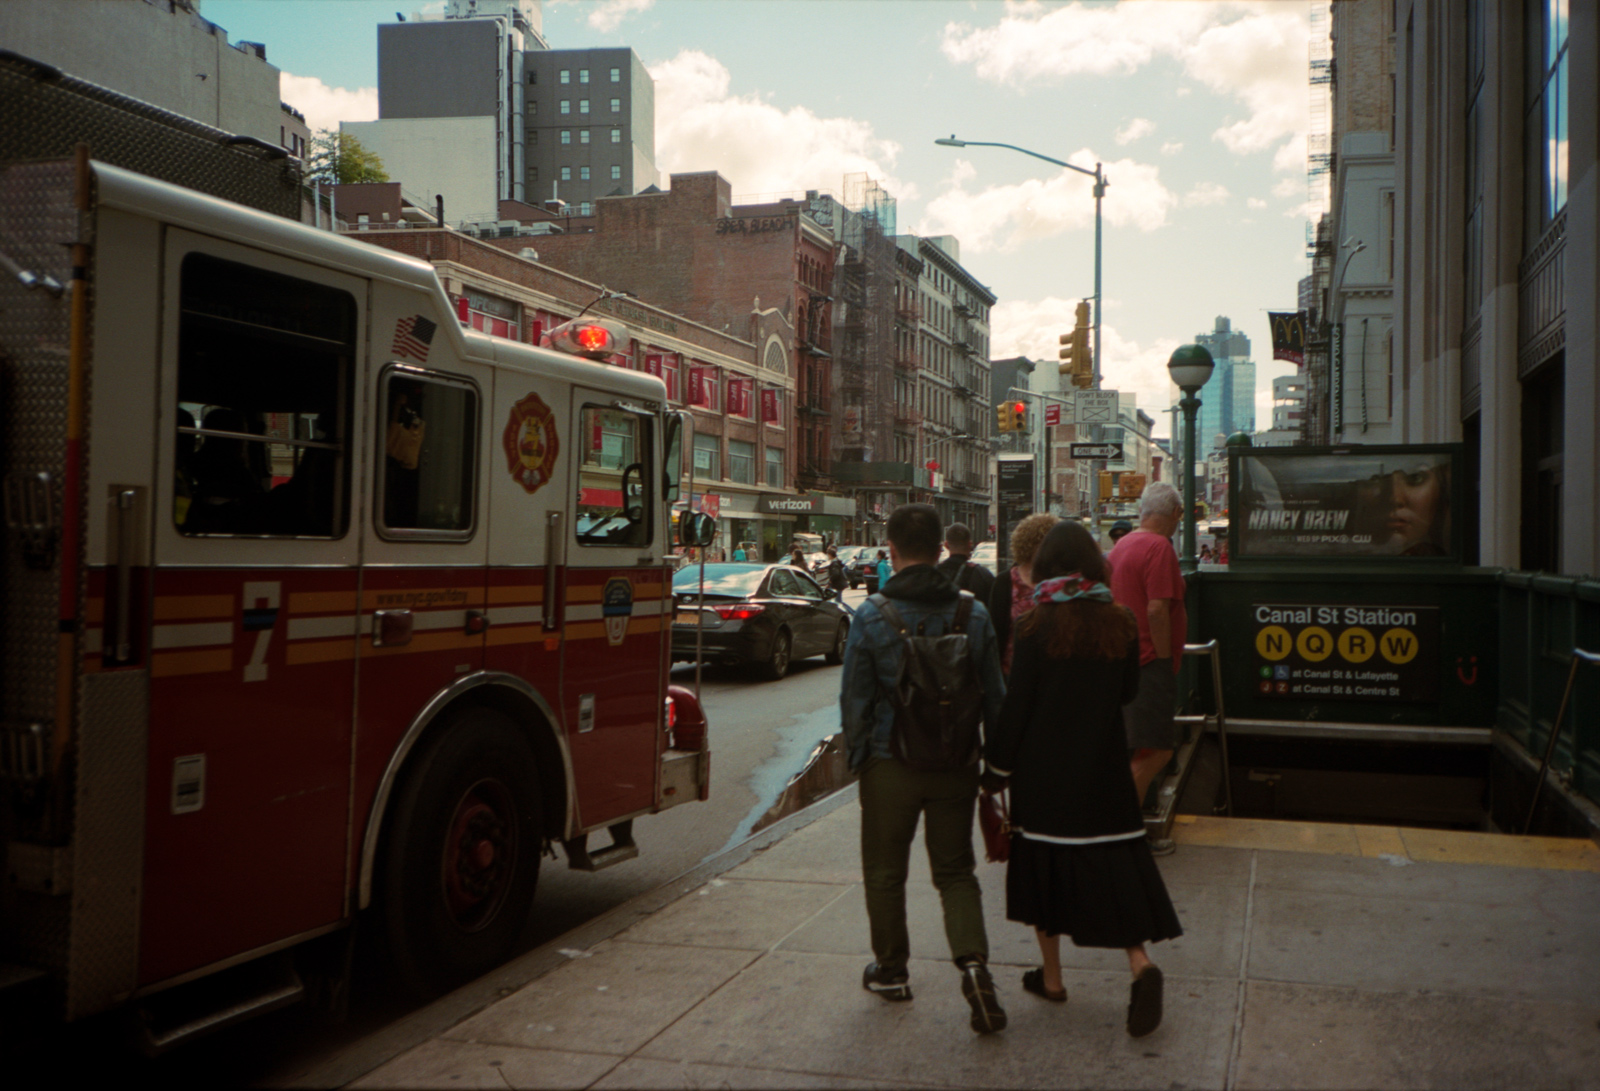 A fireman taking a picture from the fire truck of people passing Canal St Station Subway. Lonely New York Series. Photography By Ioannis Koussertari.